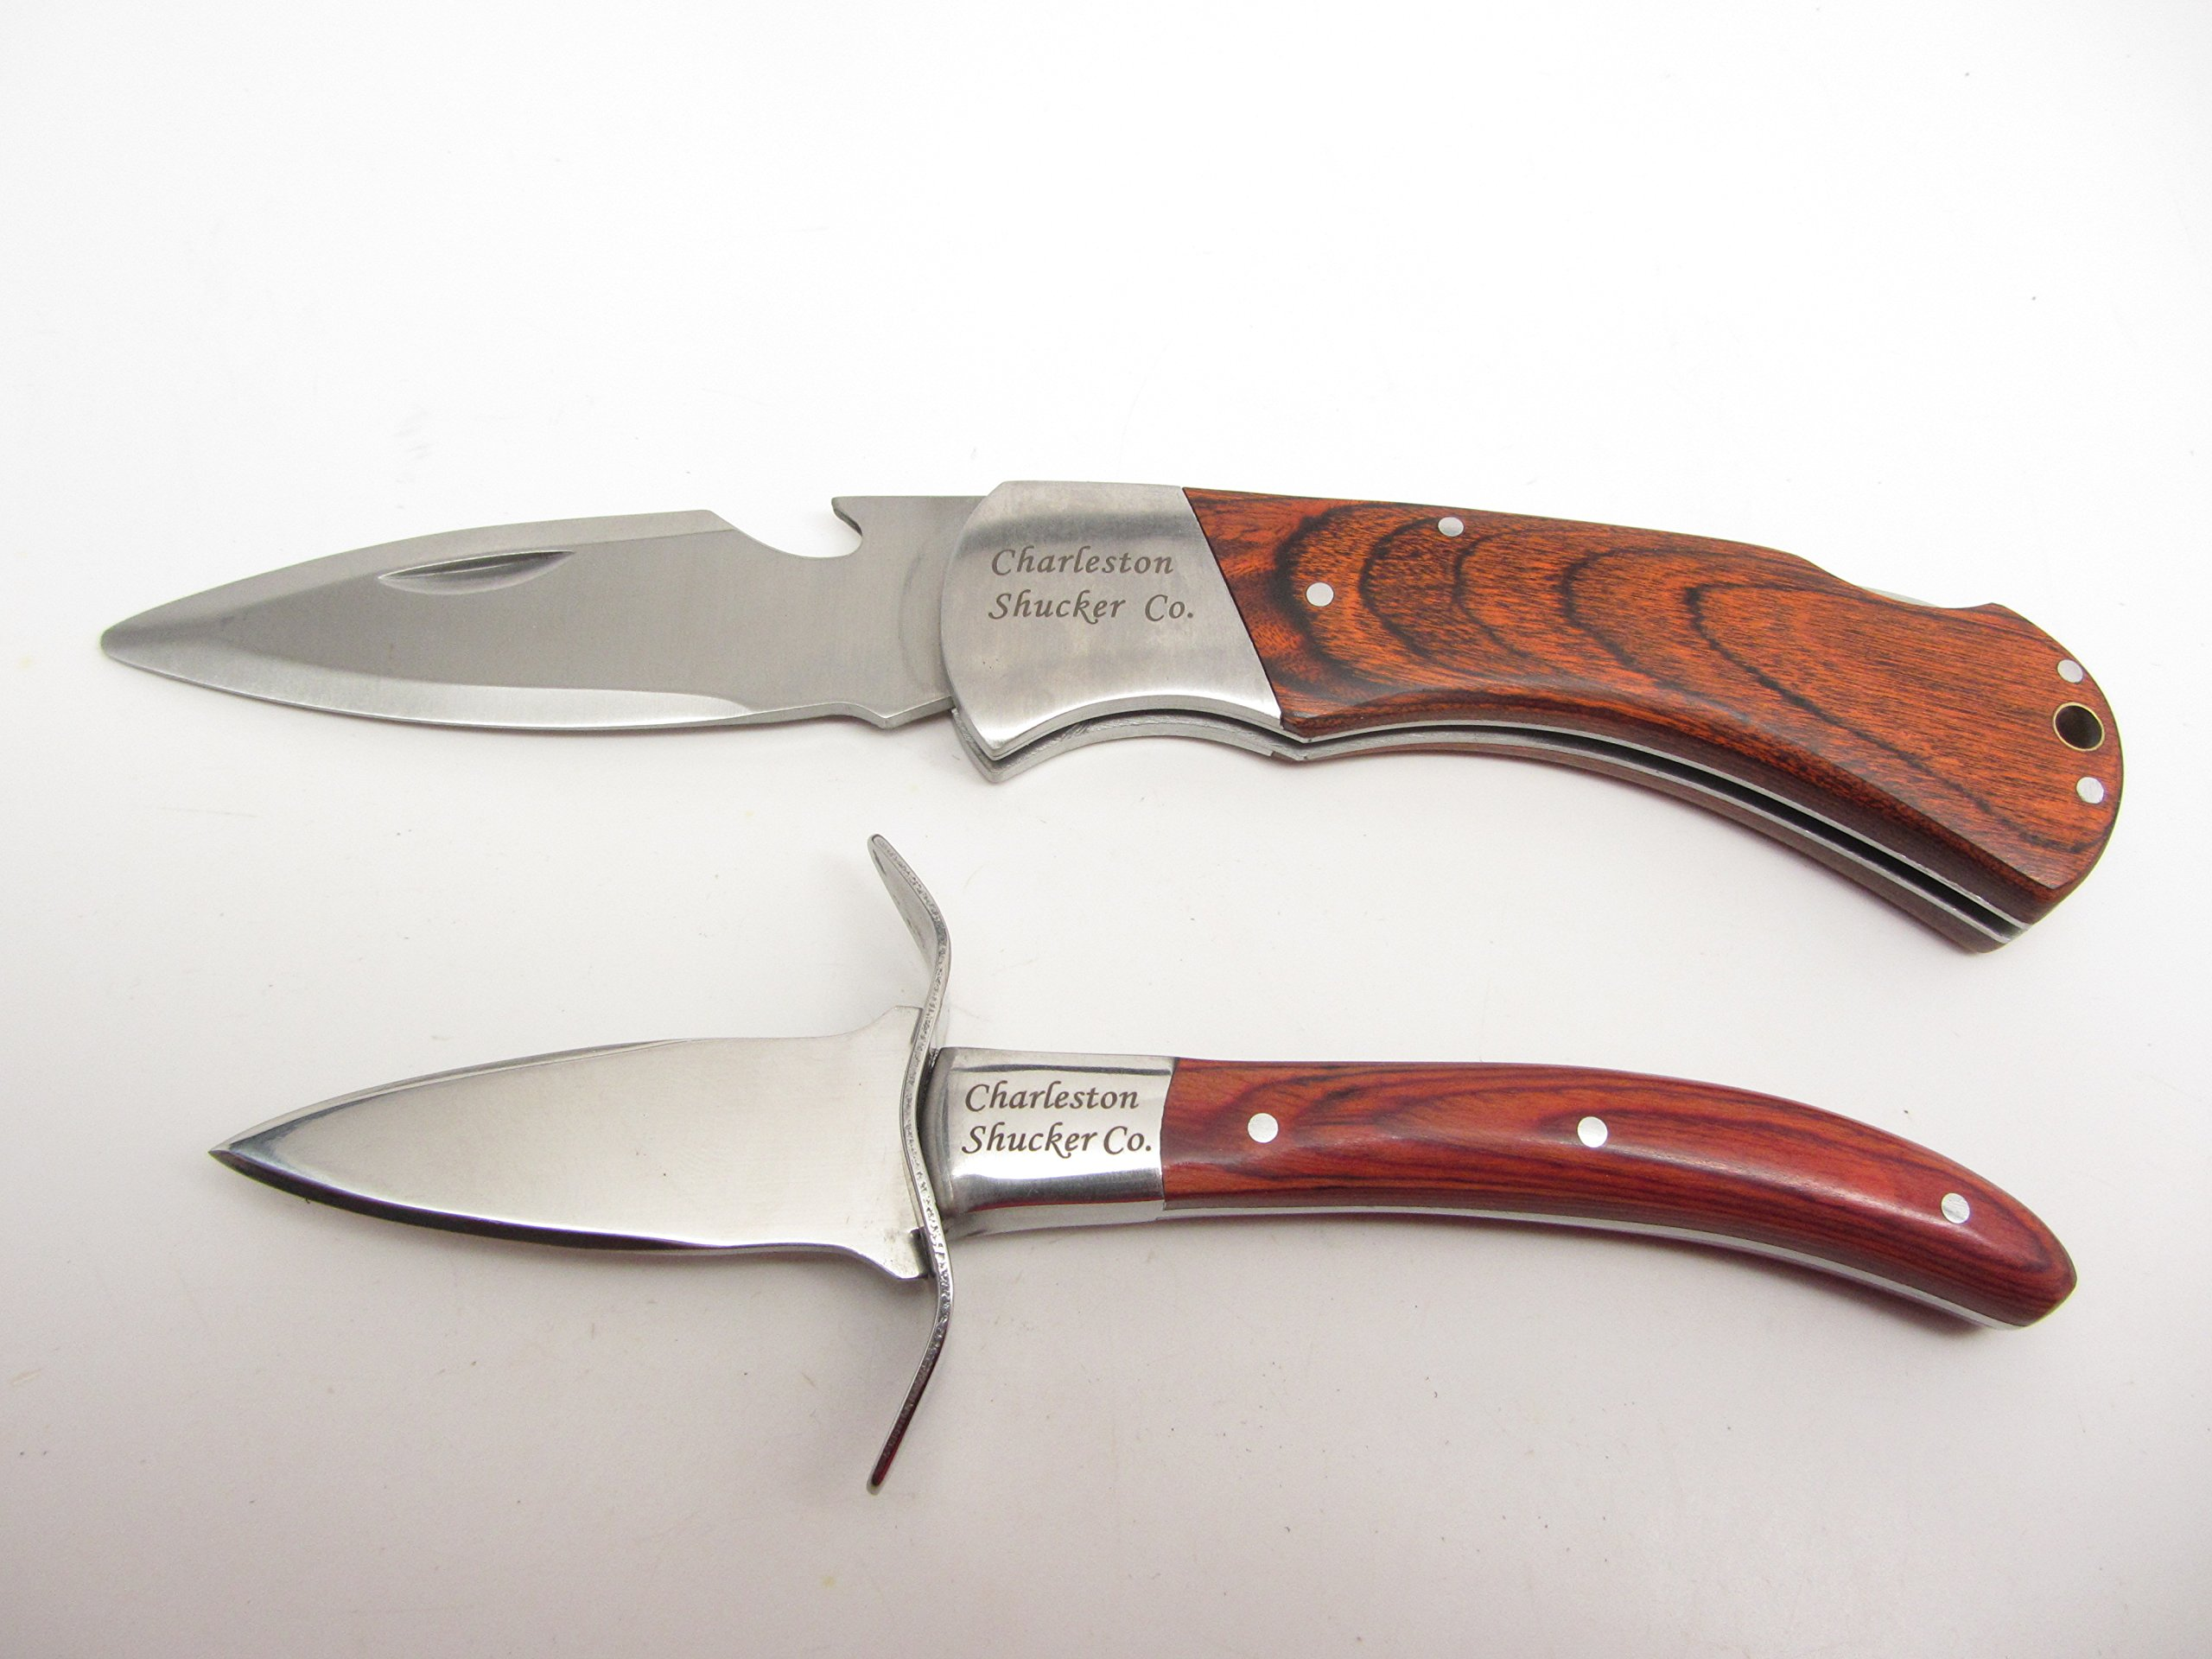 Charleston Shucker Company Stowaway & Palmetto Knife w/ Built-In Bottle Opener Knives Variety Pack by UJ Ramelson Co (Image #2)